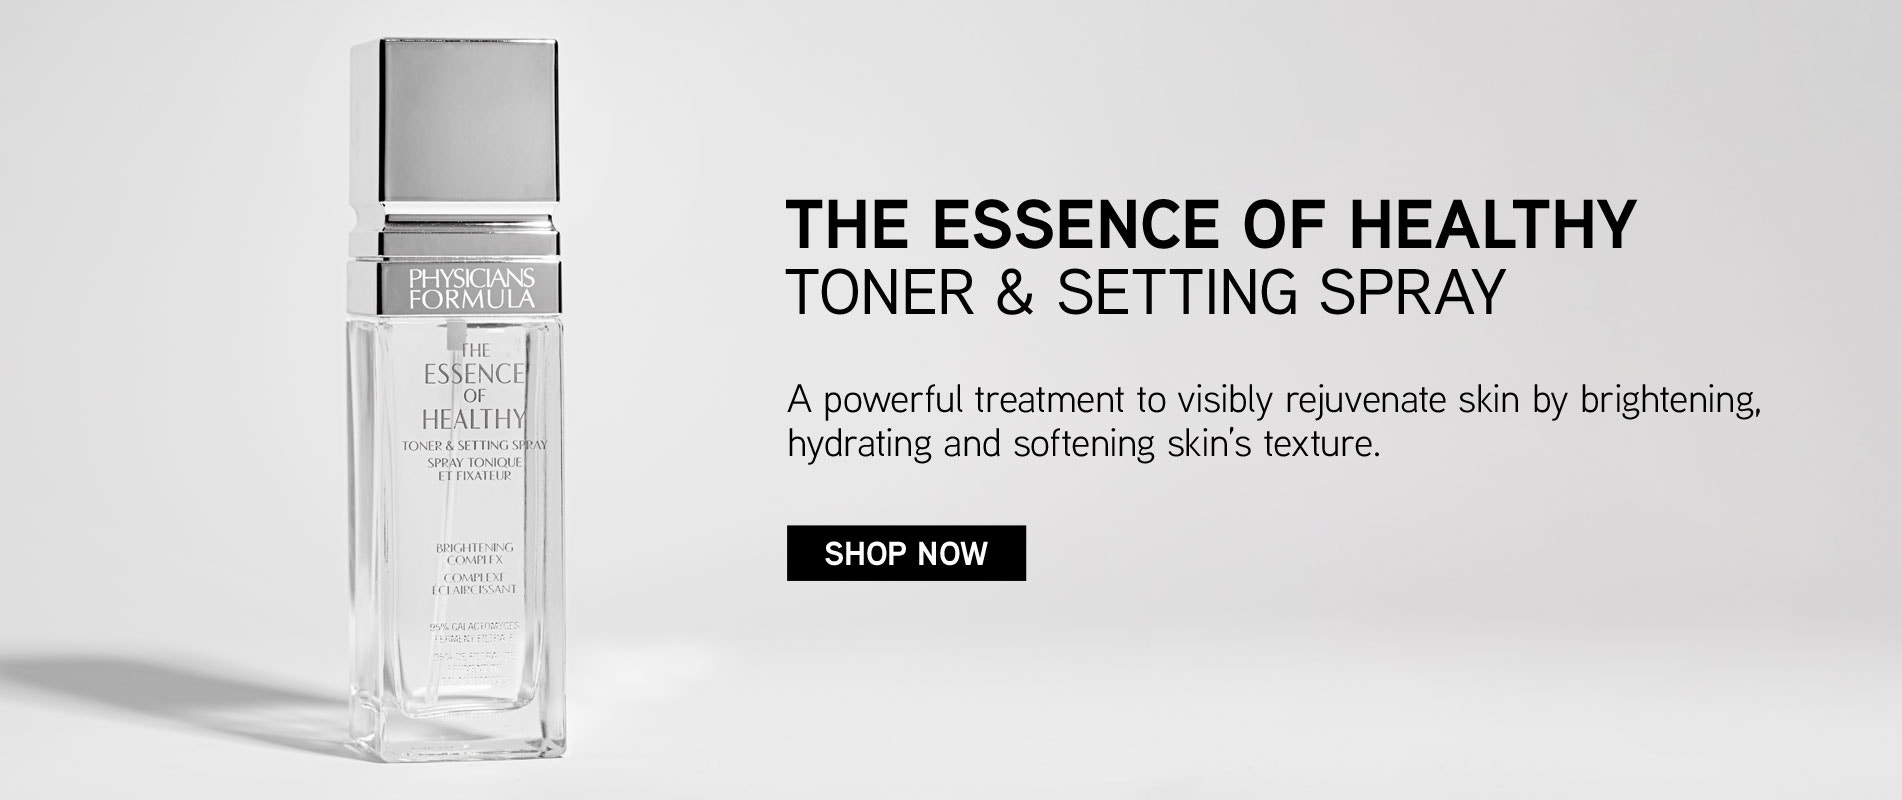 Physicians Formula | The Essence of Healthy Toner & Setting Spray| CLICK HERE TO SHOP NOW